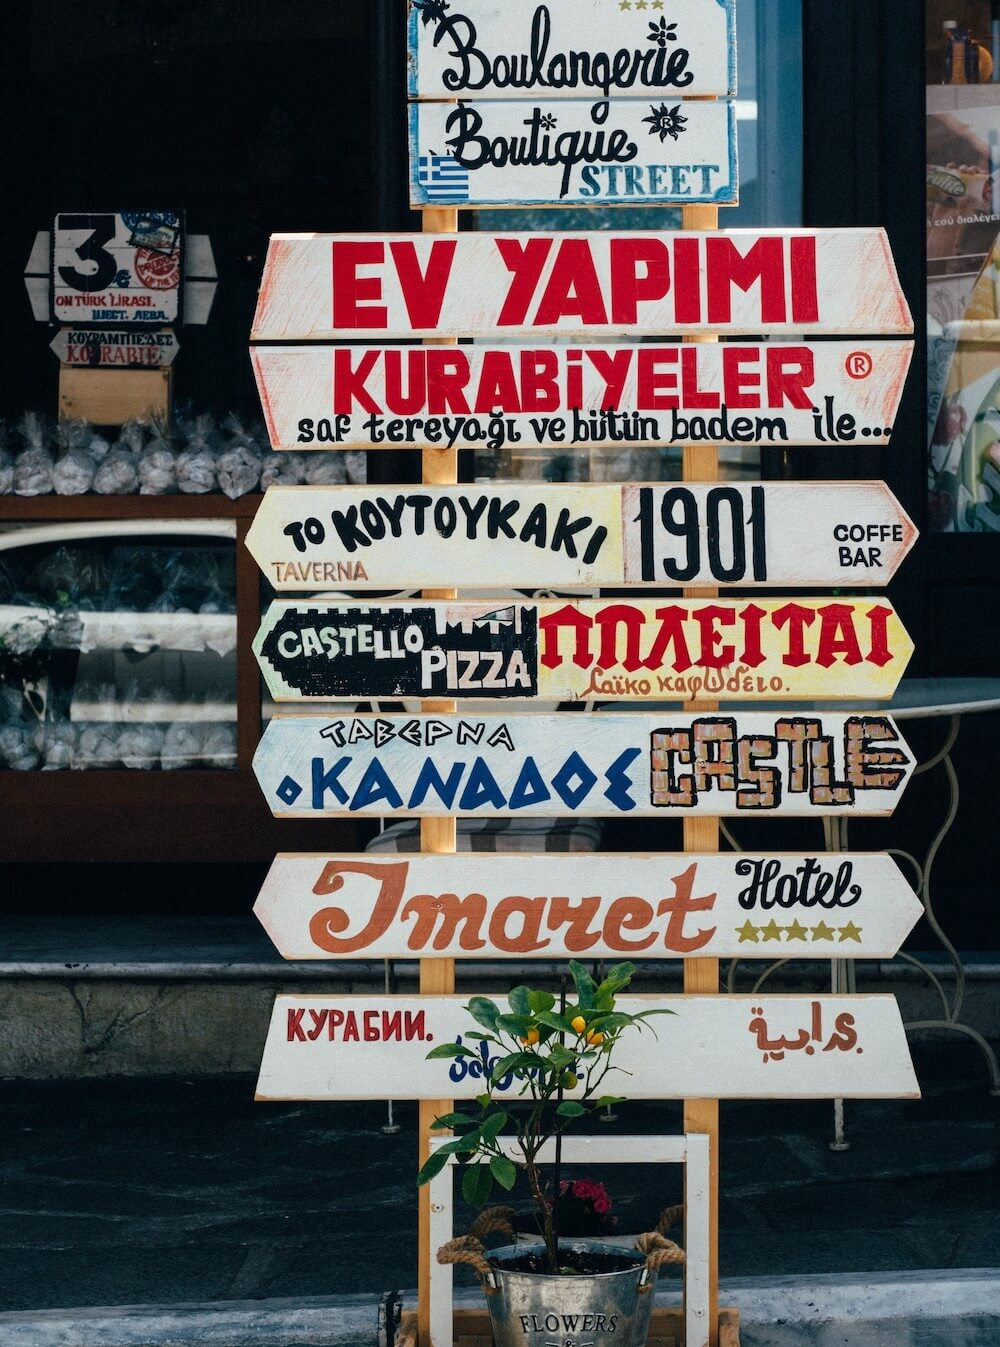 Street signs in several different foreign languages for a tavern, a pizza place, a castle and a hotel